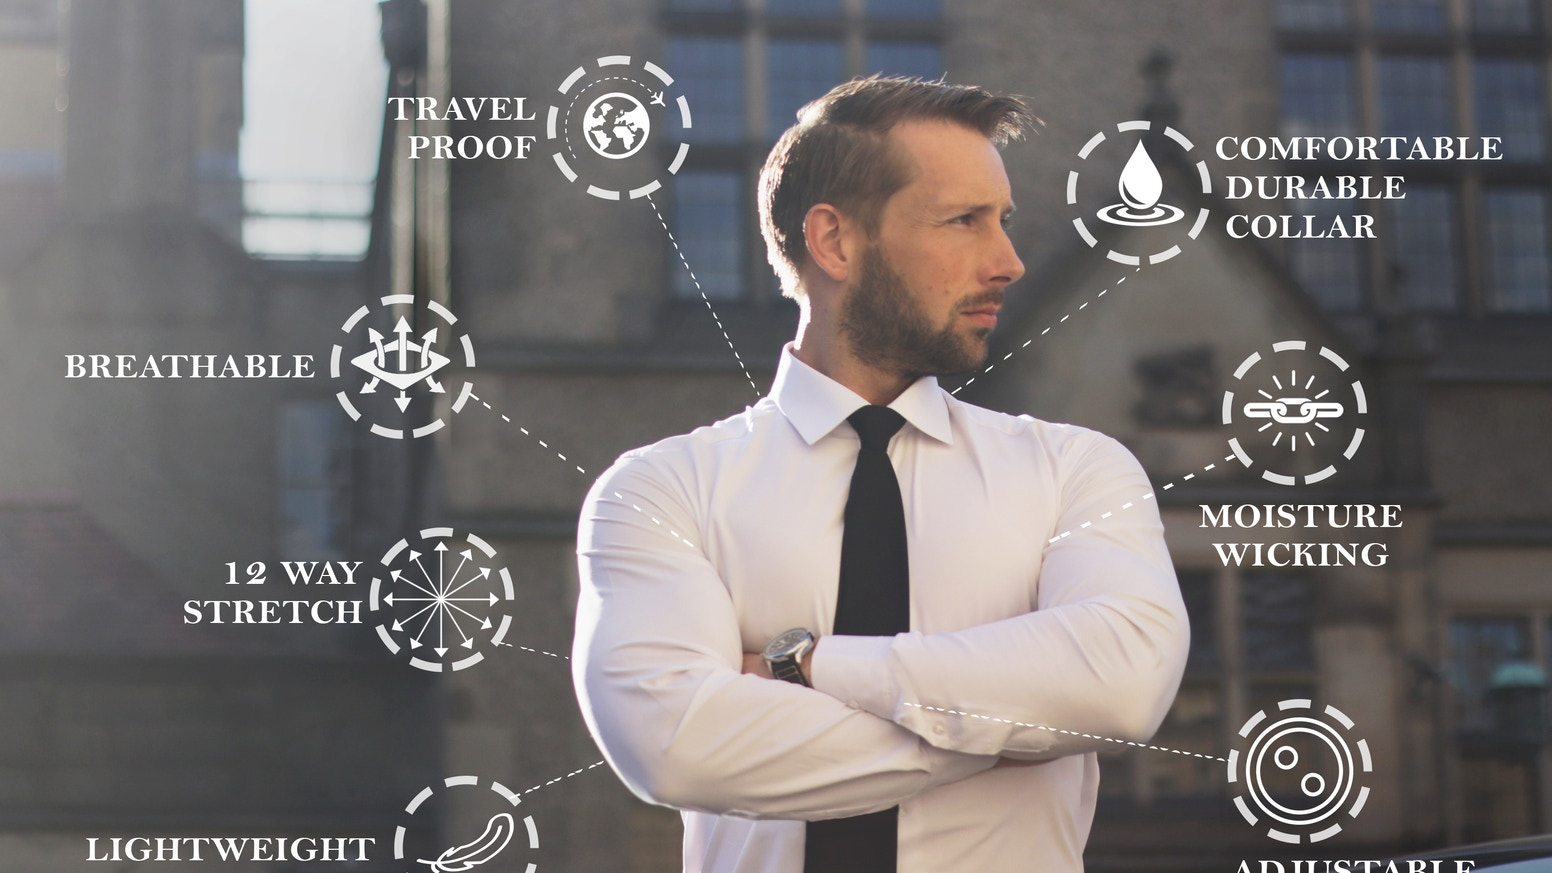 Featuring multiple features, designed with luxury performance fabrics; the perfect travel shirt for the modern man.